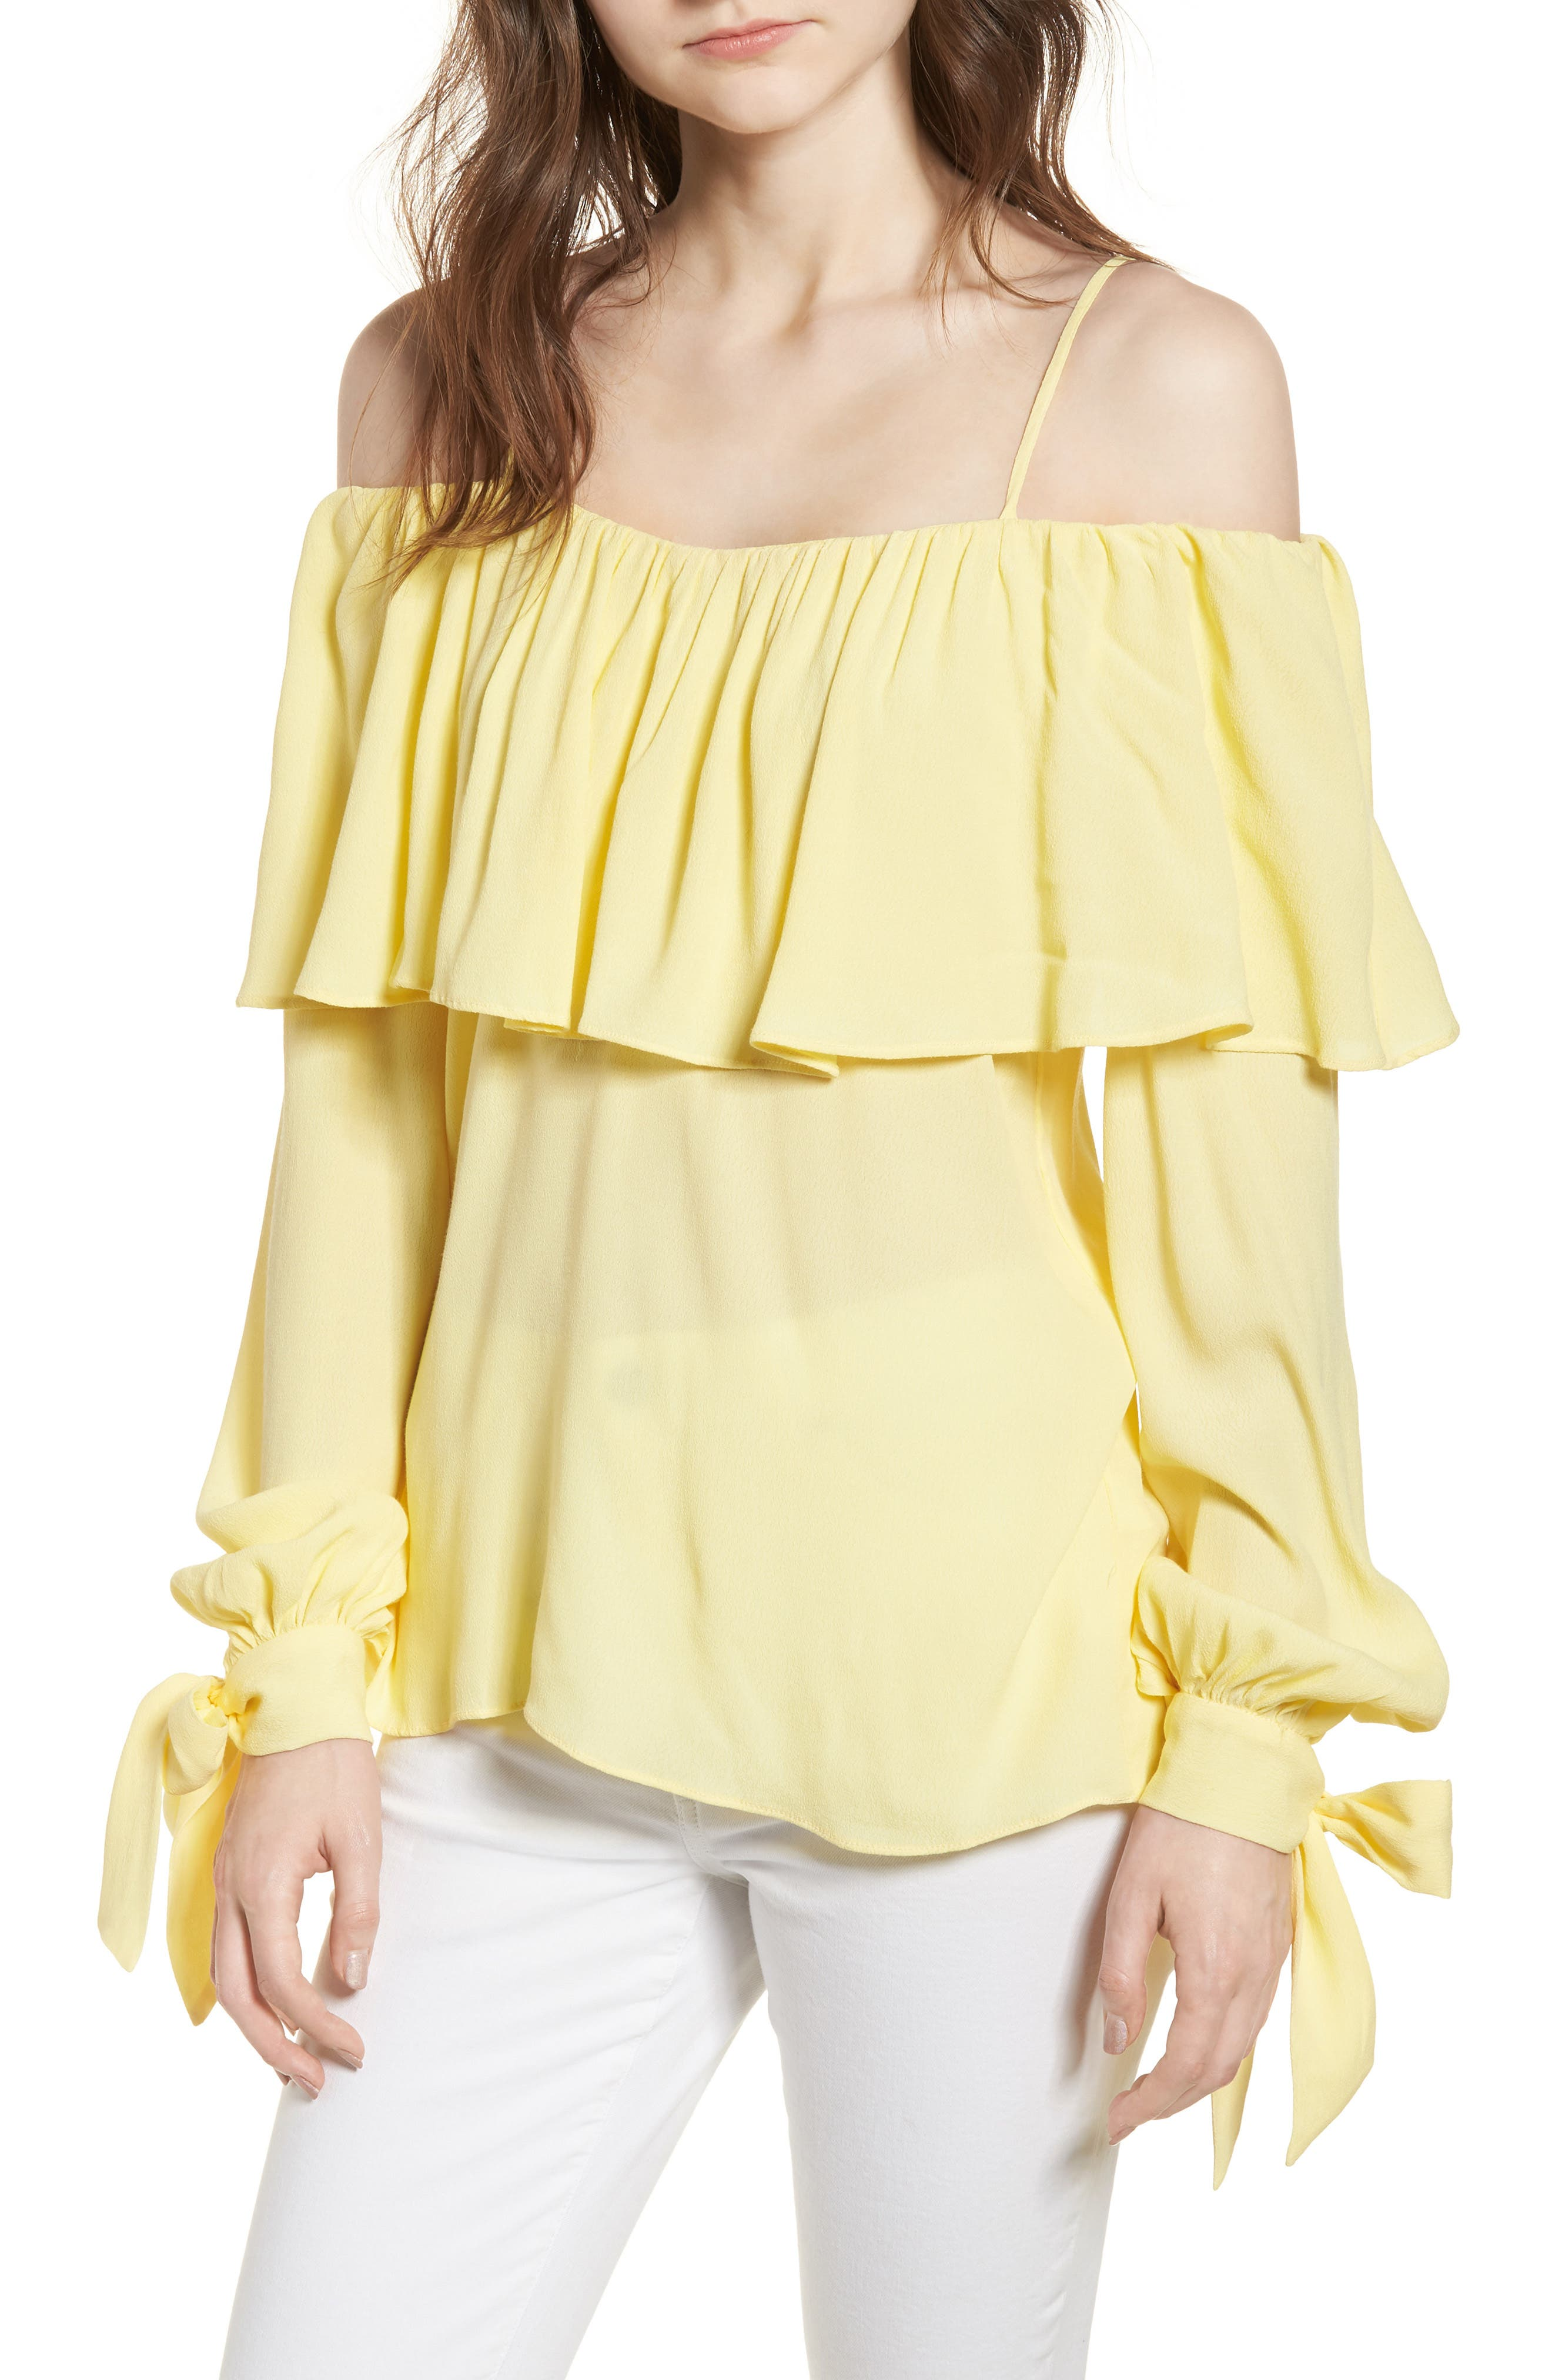 Chorus Off the Shoulder Tie Sleeve Top,                             Main thumbnail 1, color,                             700